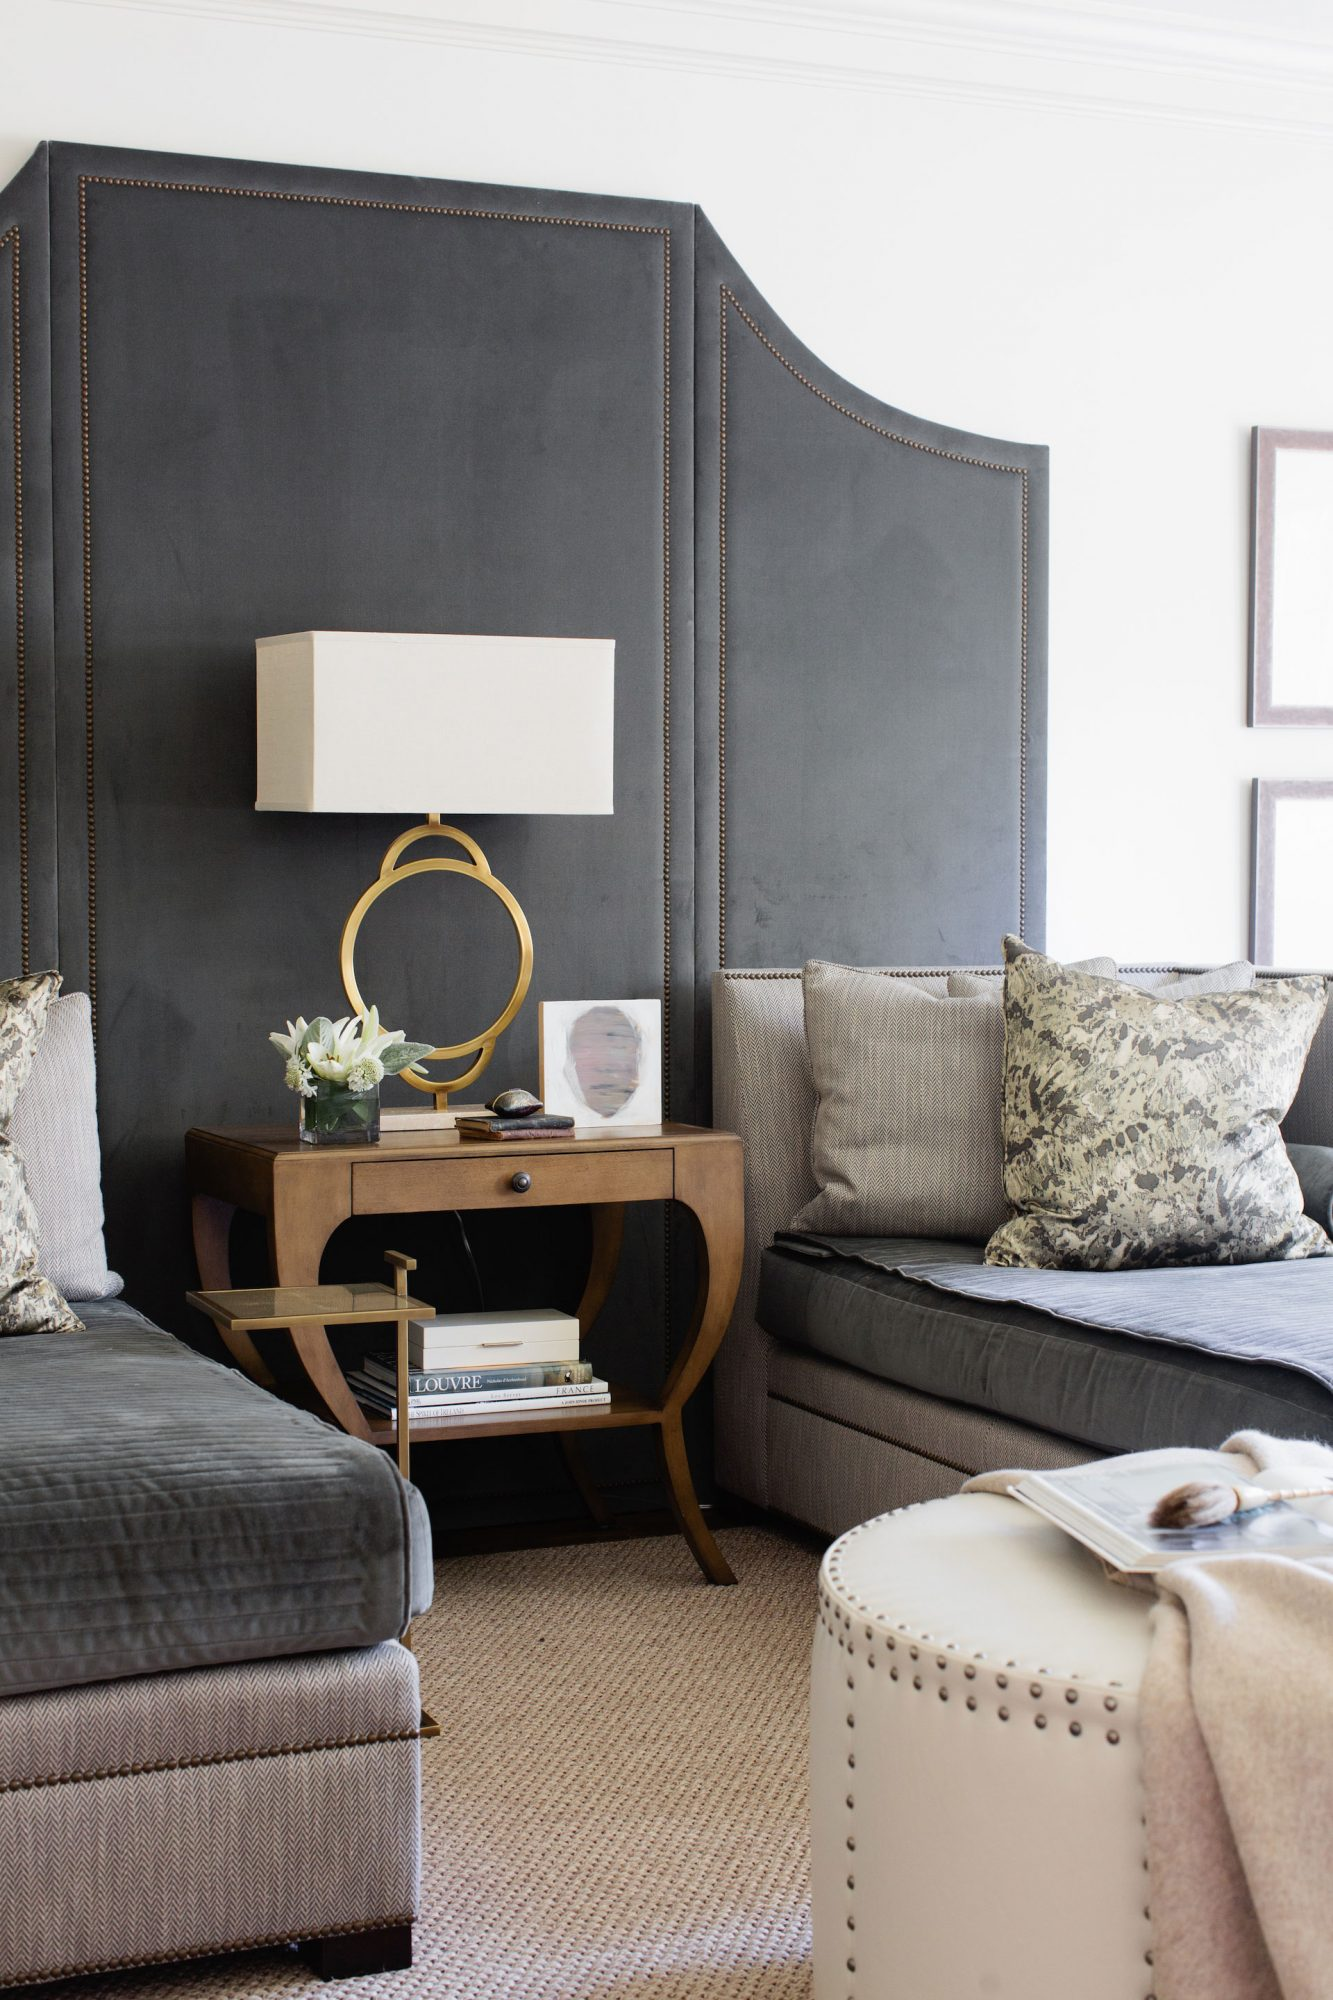 An interior with repeat fabrics in different shades of grey